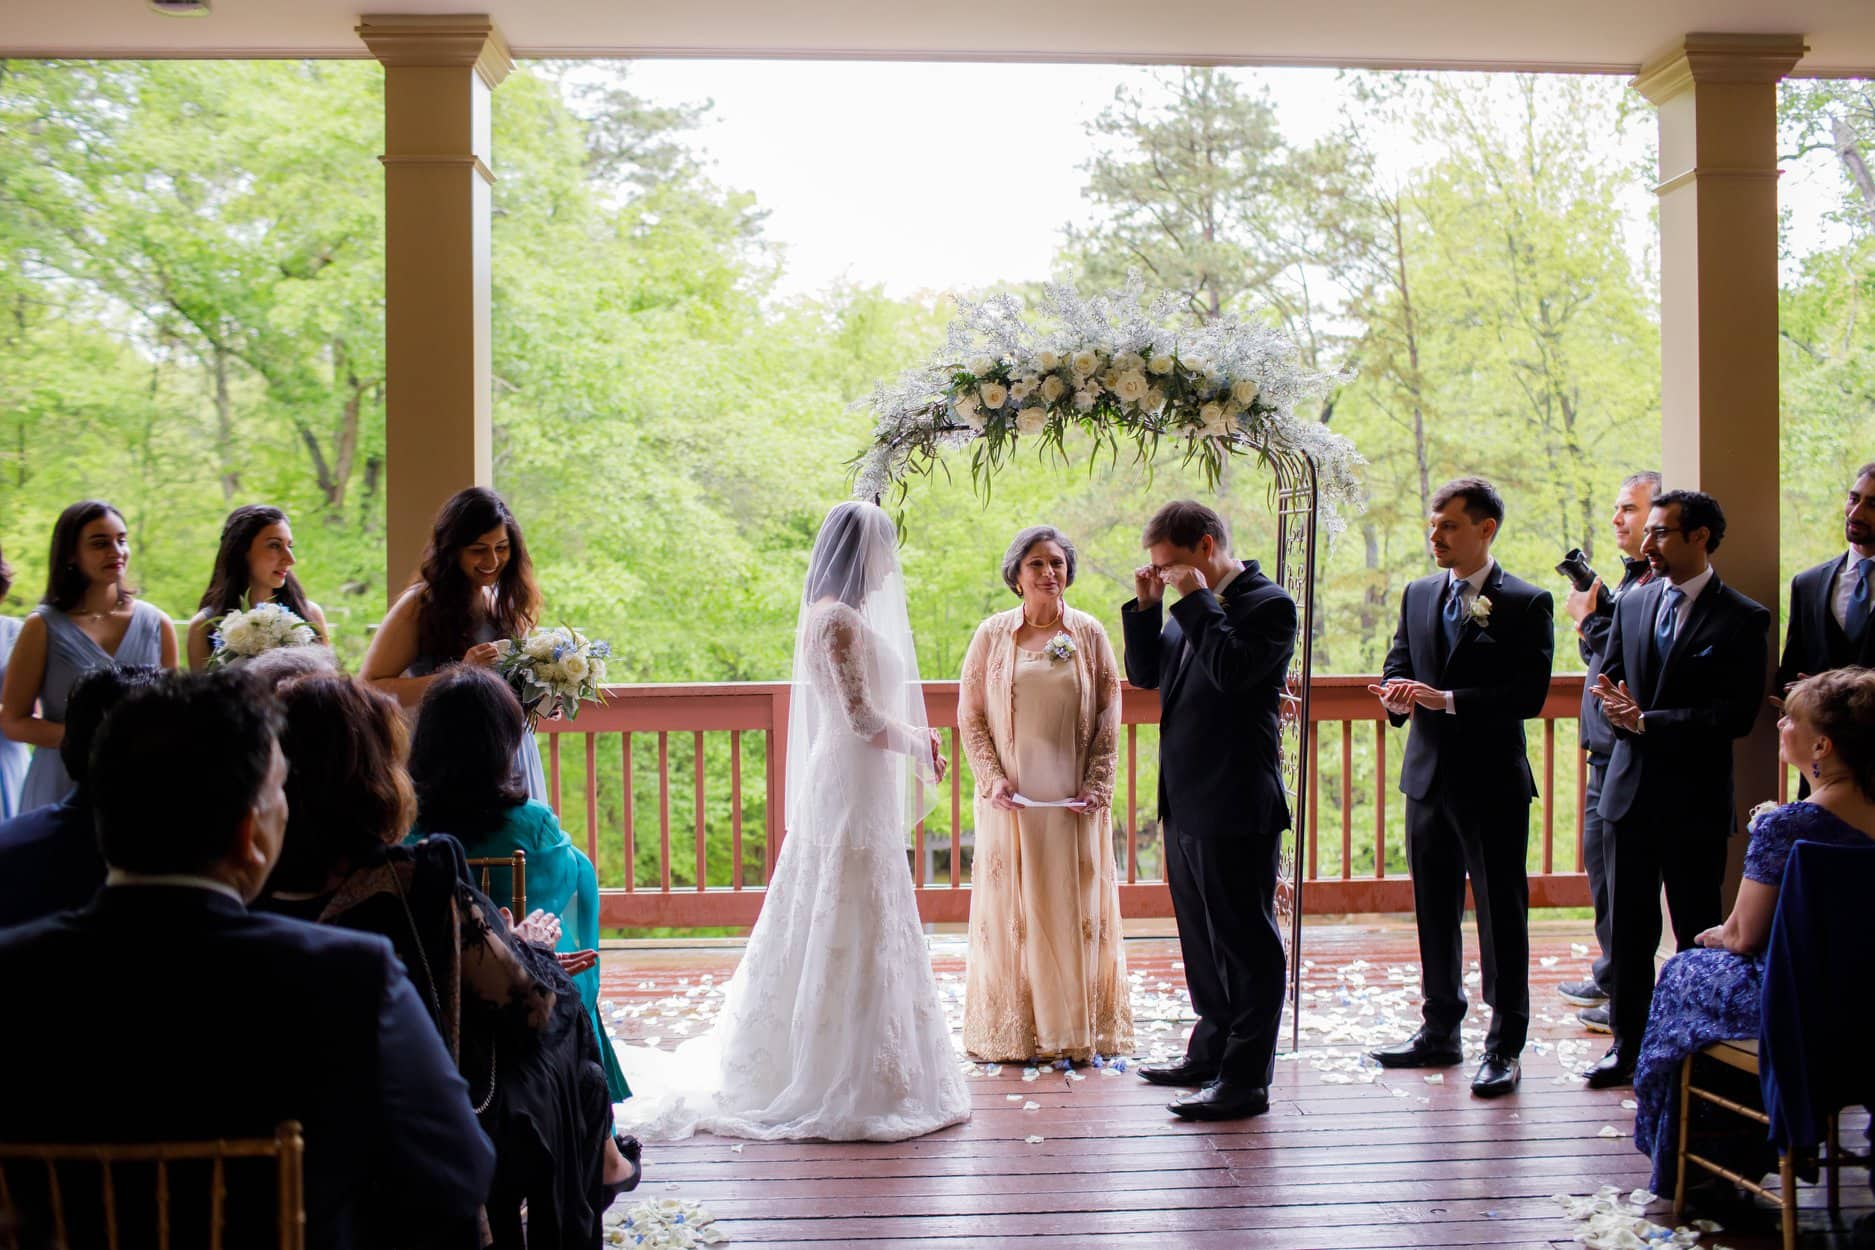 Emotional Groom at altar under arbor with bride, officiant and bridal party